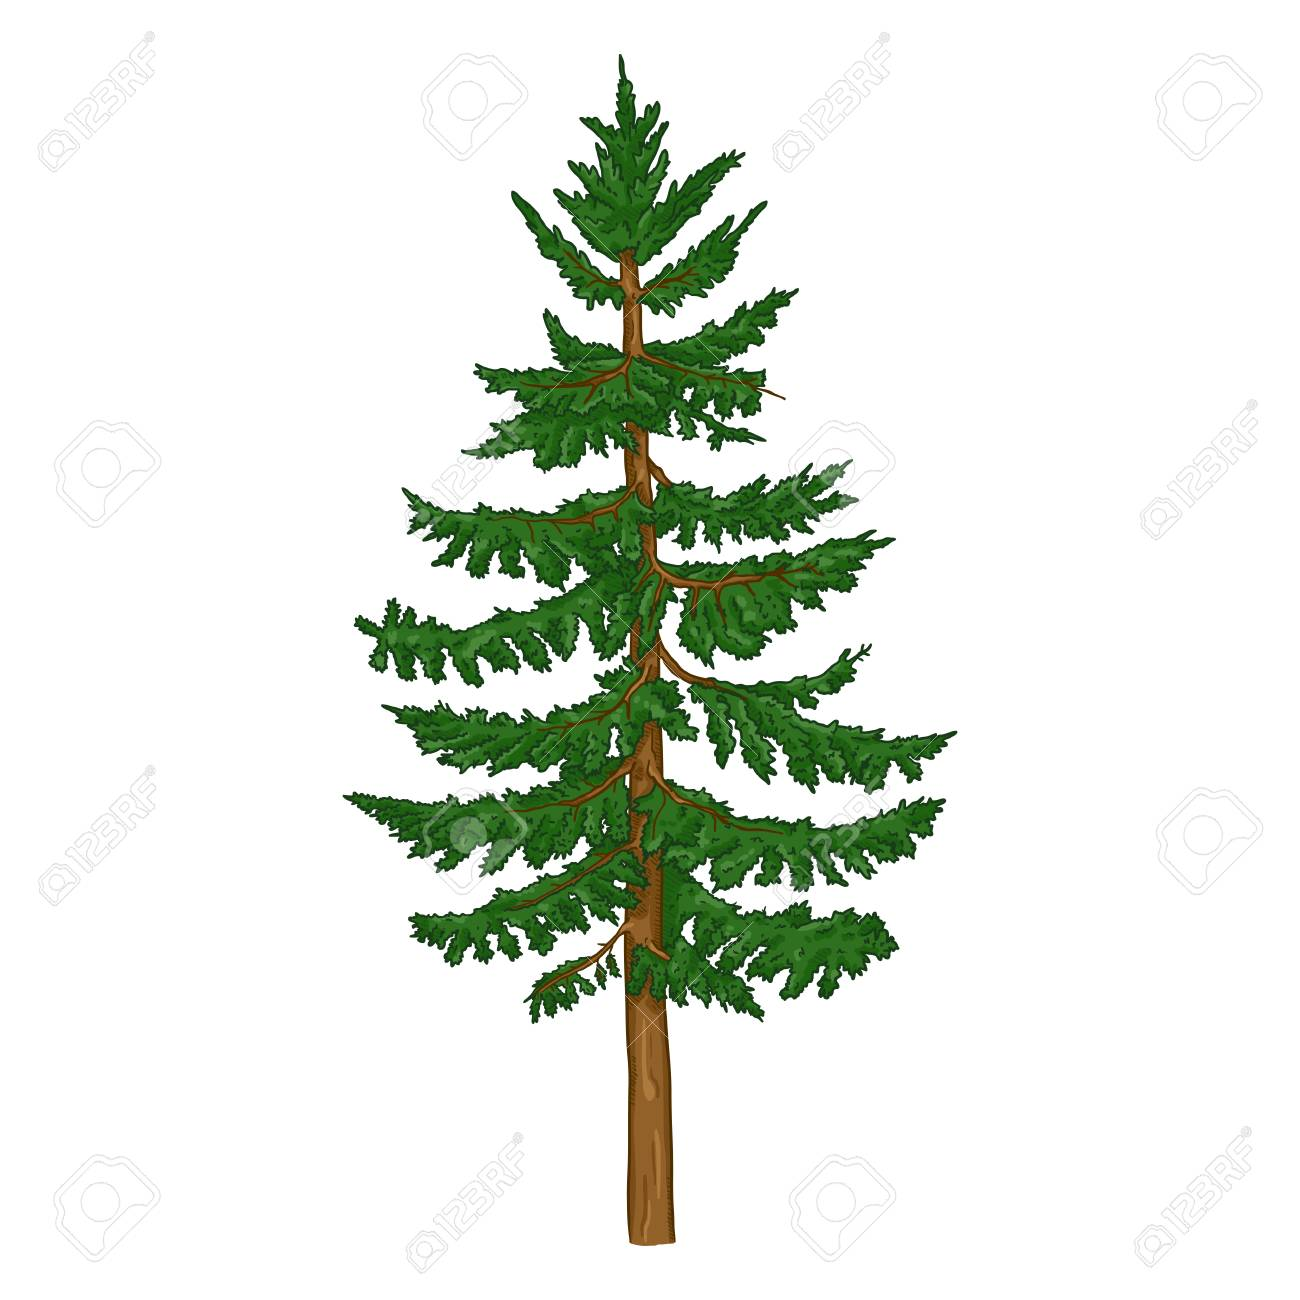 Vector Single Cartoon Spruce Evergreen Conifer Tree Royalty Free Cliparts Vectors And Stock Illustration Image 123324587 Bright colored cartoon layouts with pointy tips and thick outlines. vector single cartoon spruce evergreen conifer tree